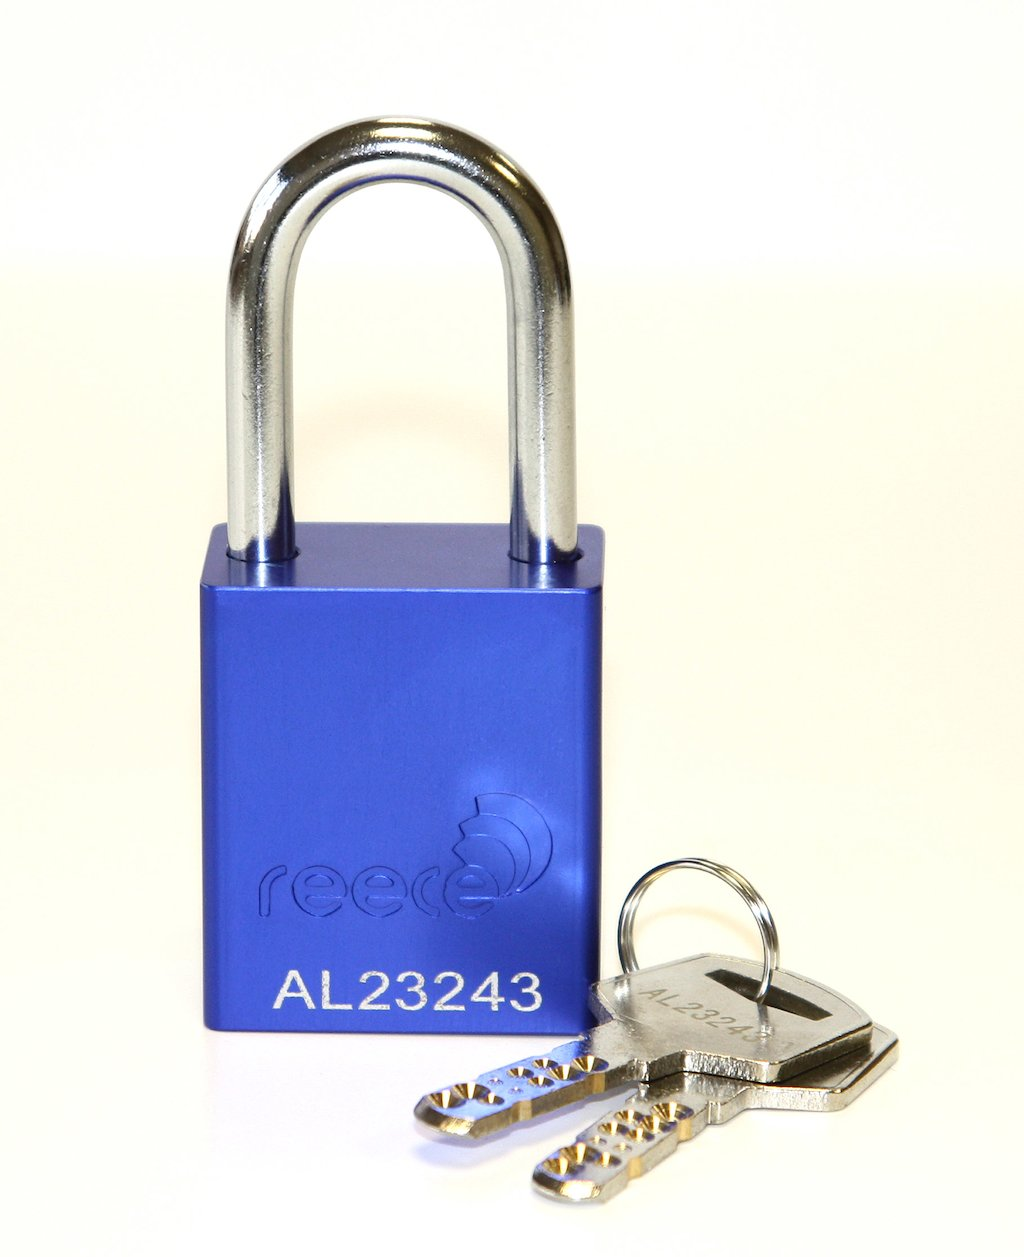 Aluminium bodied safety padlock with steel shackle